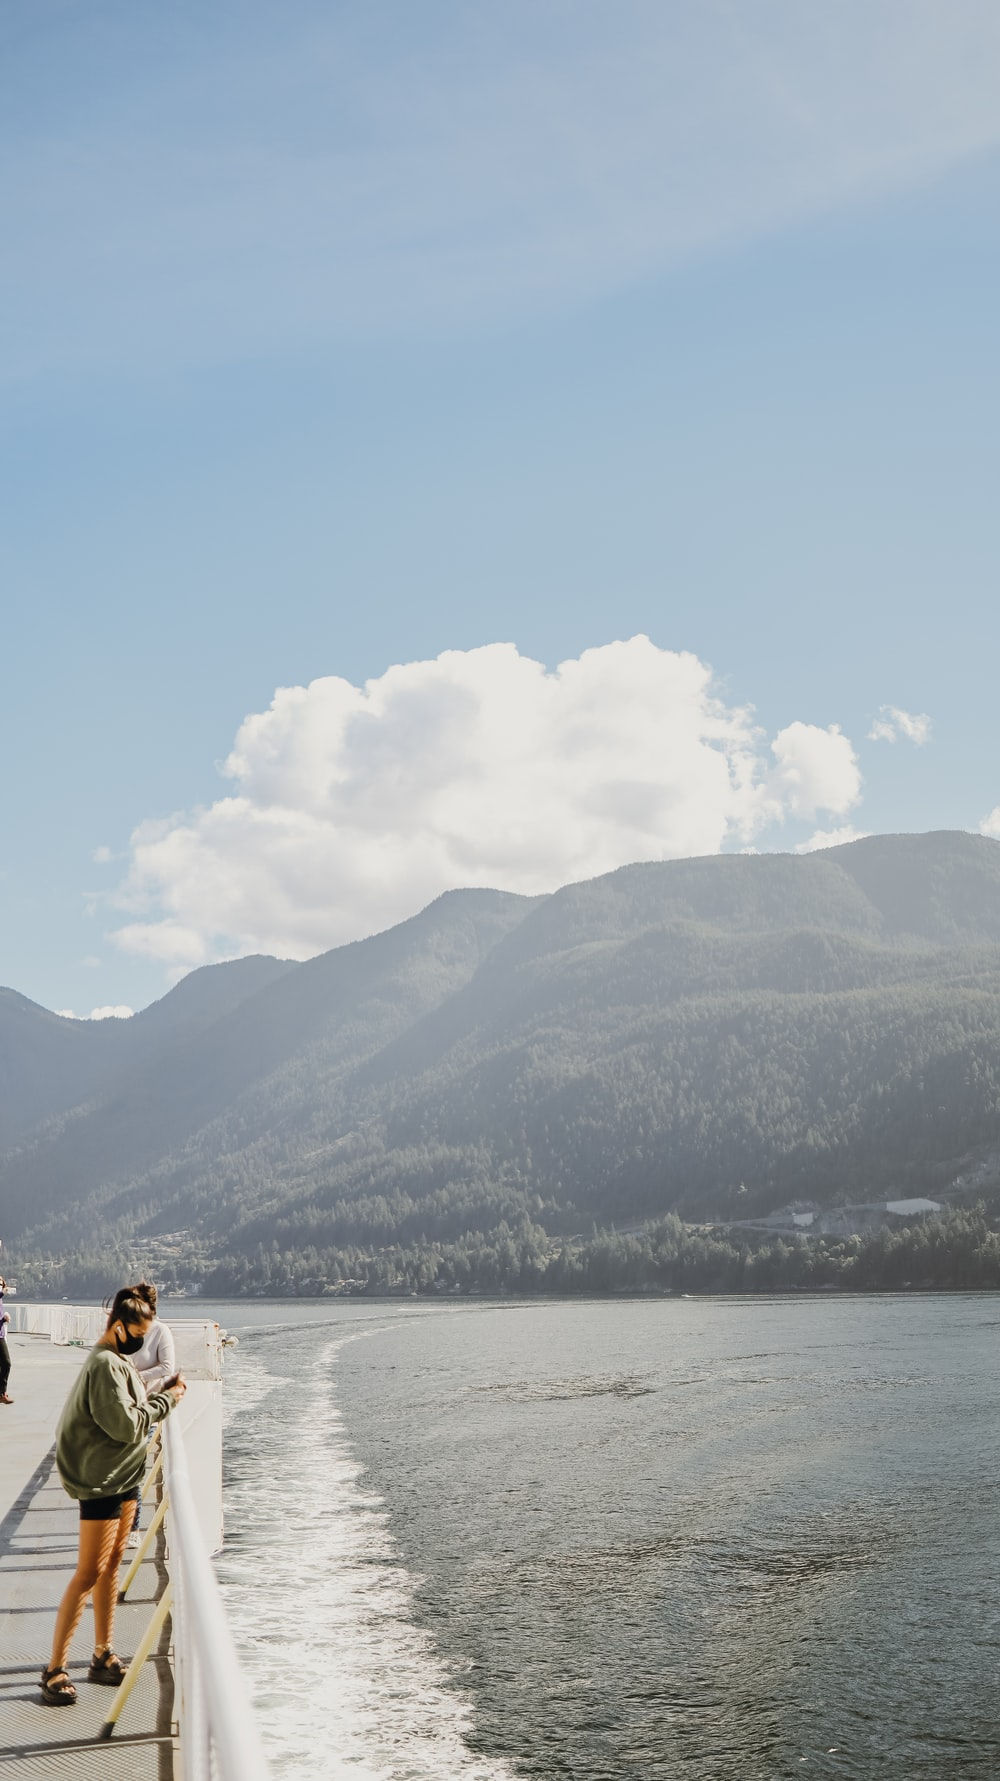 2 person sitting on white boat on sea during daytime